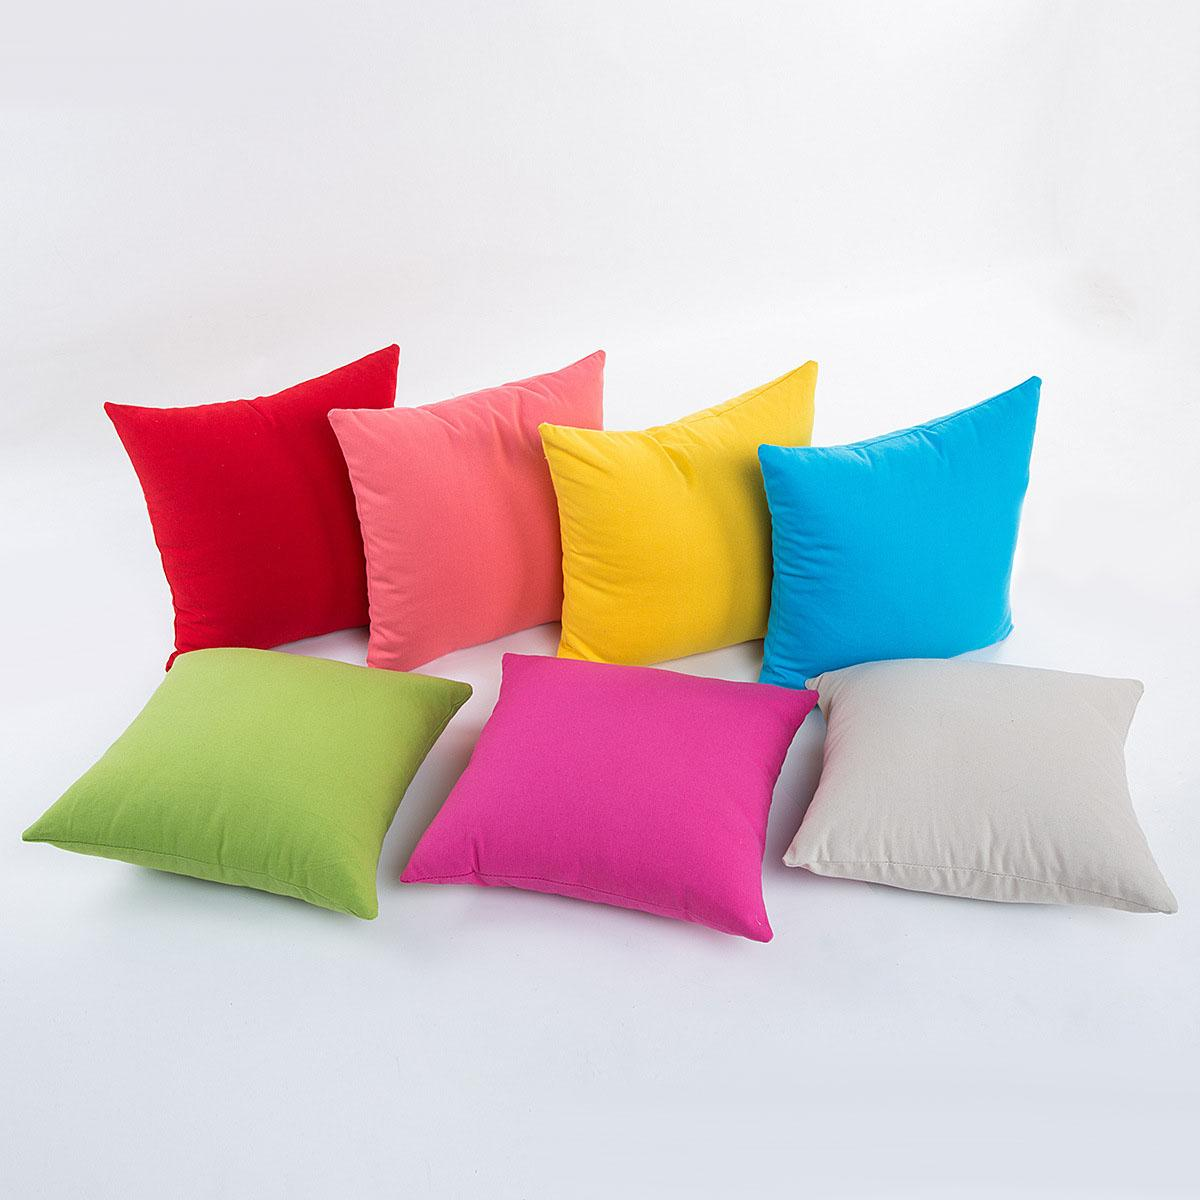 84f240838d9 Solid Square Pillowcase Decorative Pillow Cover Sofa Seat Car Cushion Cover  Pure Cotton Candy Color 45x45cm Throw Pillow Case Outdoor Chair Cushions ...